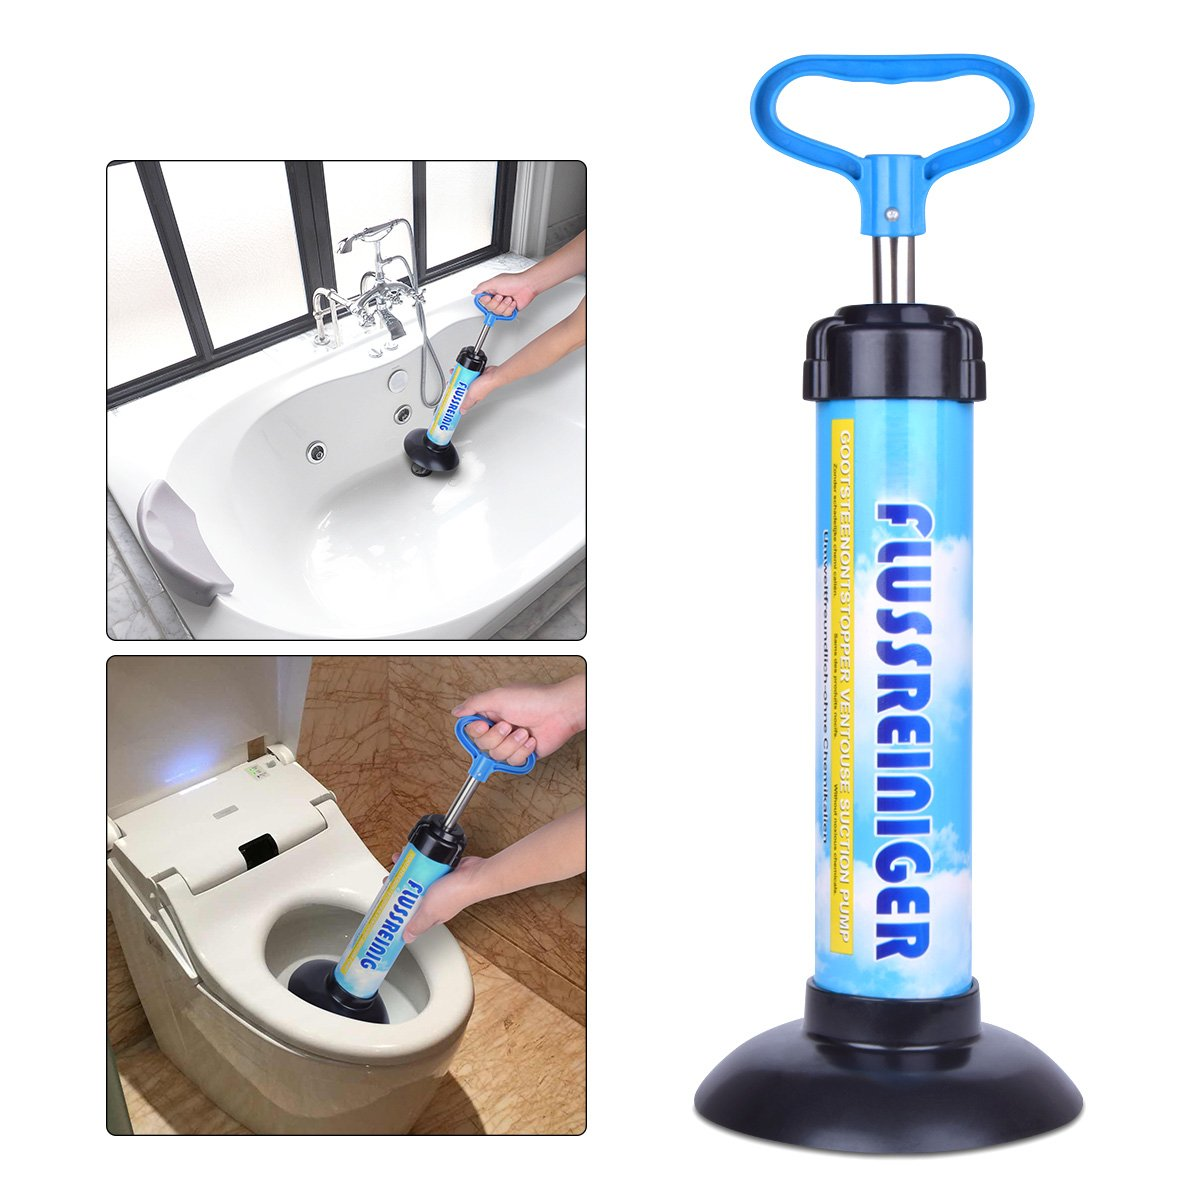 Samshow - Toilet Plunger Powerful Manual Multi Drain Plunger Suitable for Bathtubs,Toilets, Showers (Blue)